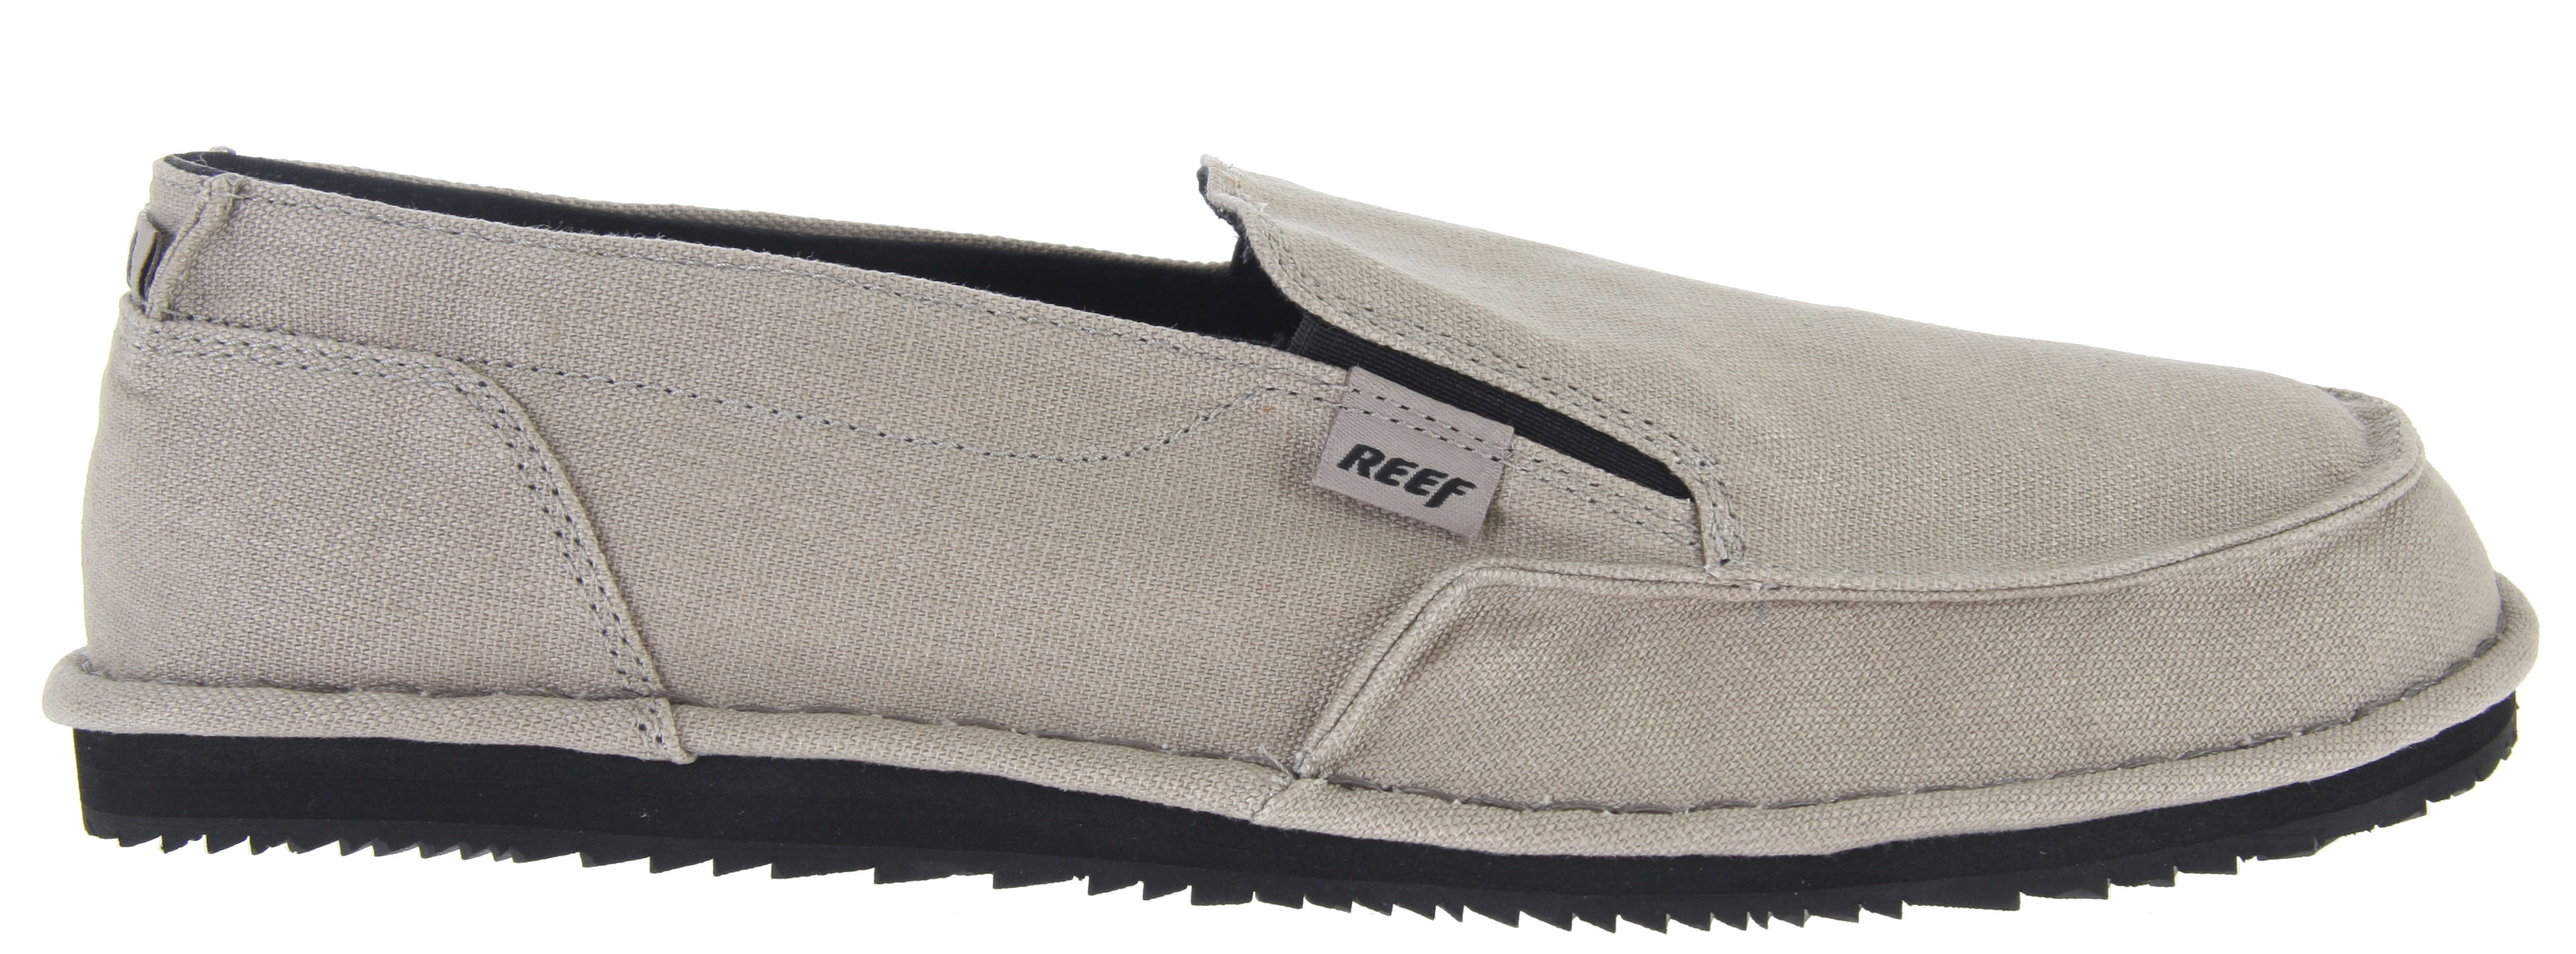 Surf Looking a comfortable, casual, and stylish shoe? Look no further than the Reef Soulwolf Shoe. This shoe is a casual shoe that has no laces so that means you can just slip them on for when your on the go. It has a soft breathable canvas material that covers the top of the shoe, no more sweaty feet! Its Eva Midsole W/ Reef Sandal Arch Technology really puts this casual shoe over the top. The reef sandal arch technology makes it almost impossible that your feet become sore. And of course, the feature that will send customers snatching these shoes of the shelves has to be the reef molded rubber swellular traction outsole. With a shoe this comfortable and casual, it would be hard to imagine haveing a nice swelllular ousole, but the Reef Soulwolf Shoes have em'!Key Features of the Reef Soulwolf Shoes: Soft Breathable Canvas Upper Eva Midsole W/ Reef Sandal Arch Technology Molded Wax Texture Cushion Insole Reef Molded Rubber Swellular Traction Outsole - $31.95